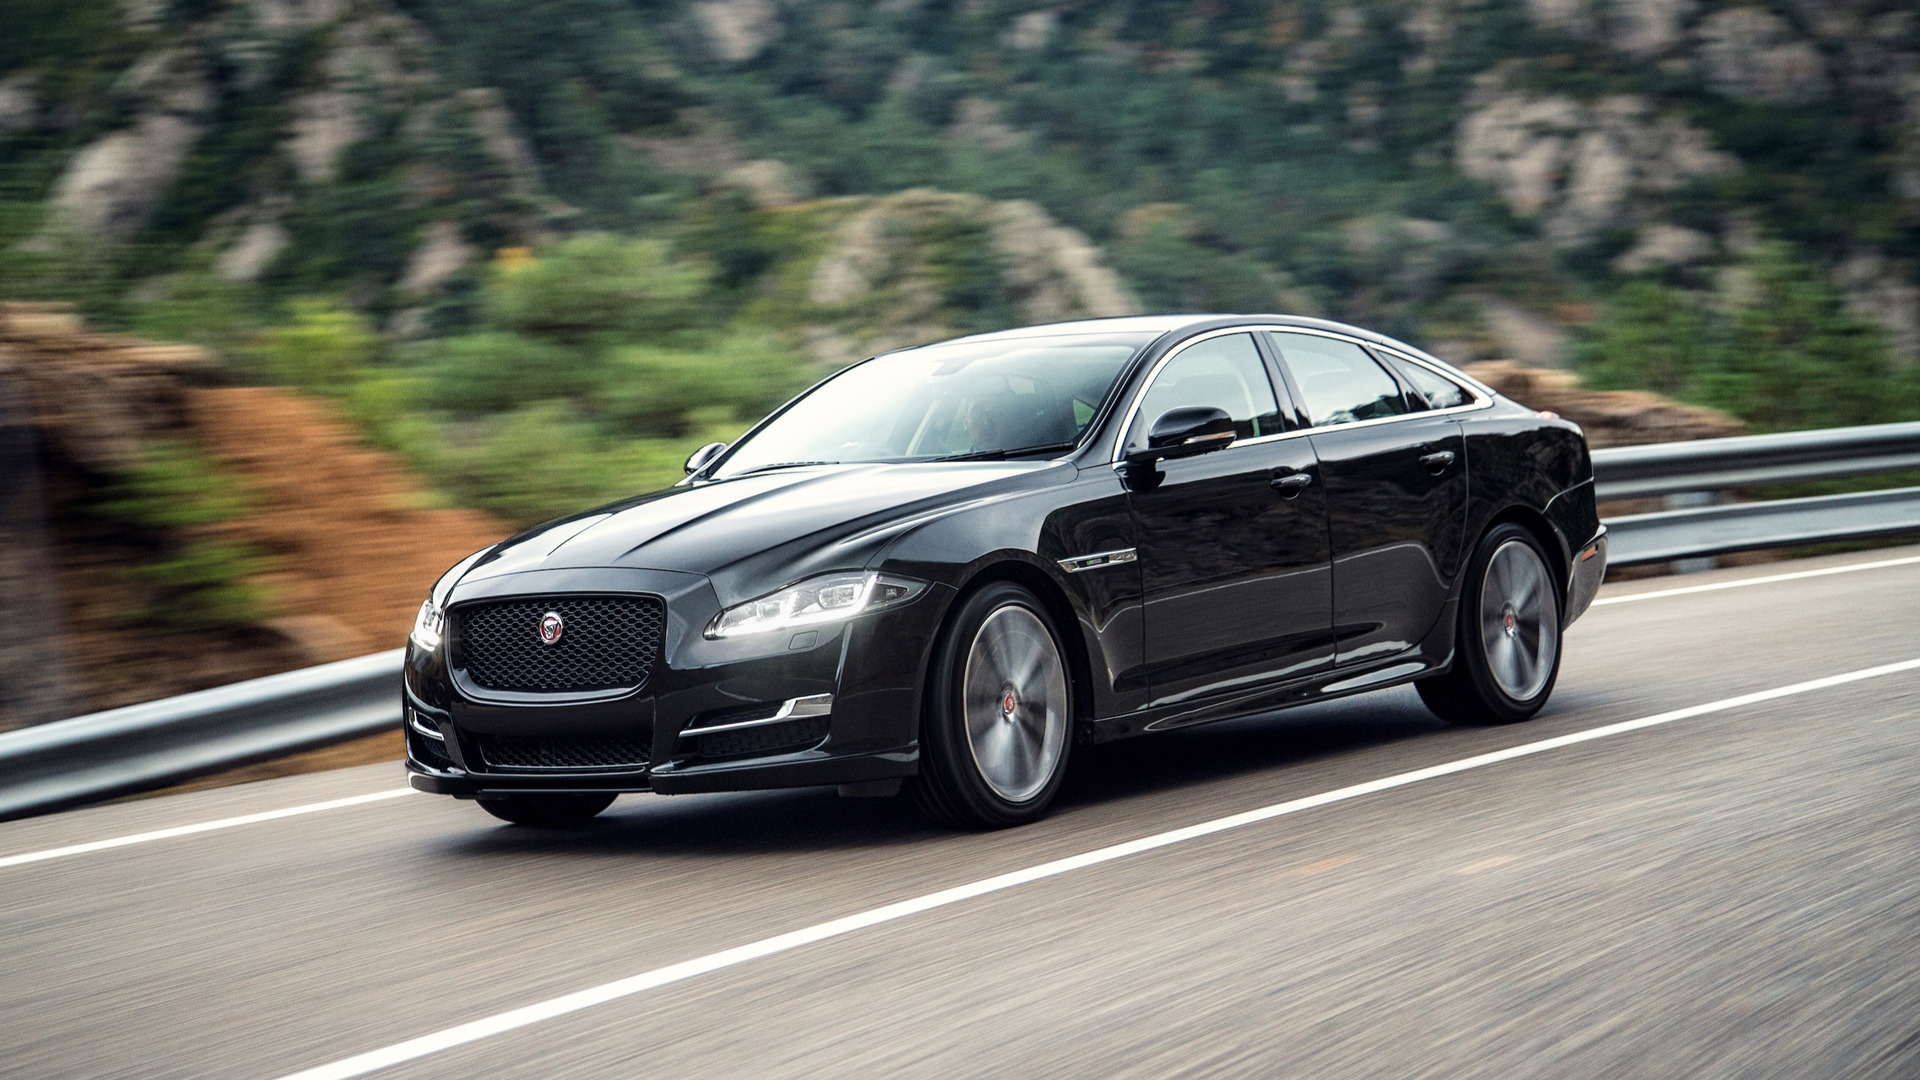 2018 jaguar xjl. fine xjl with 2018 jaguar xjl s